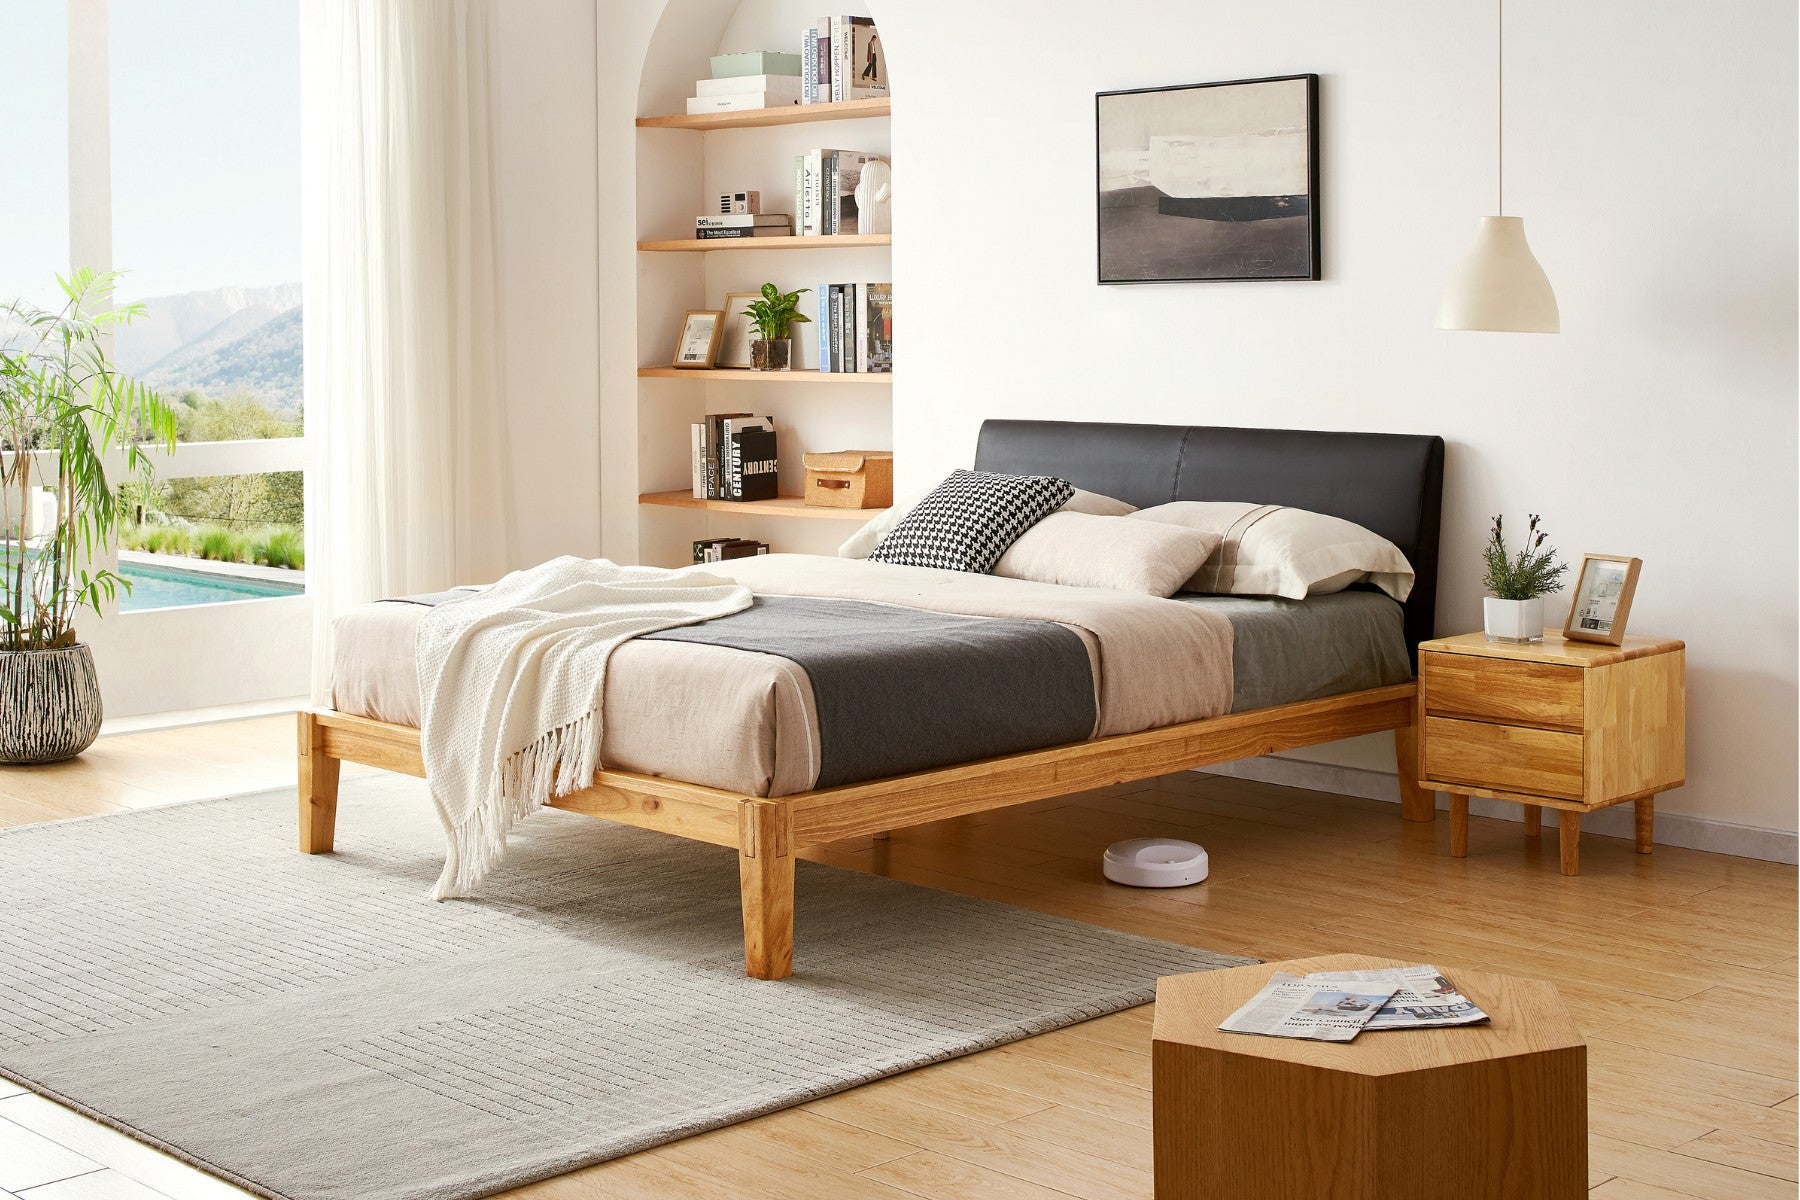 A bed with warm, wooden frame, and black cushioned headboard is styled with bedding in cream, white, black, and grey.